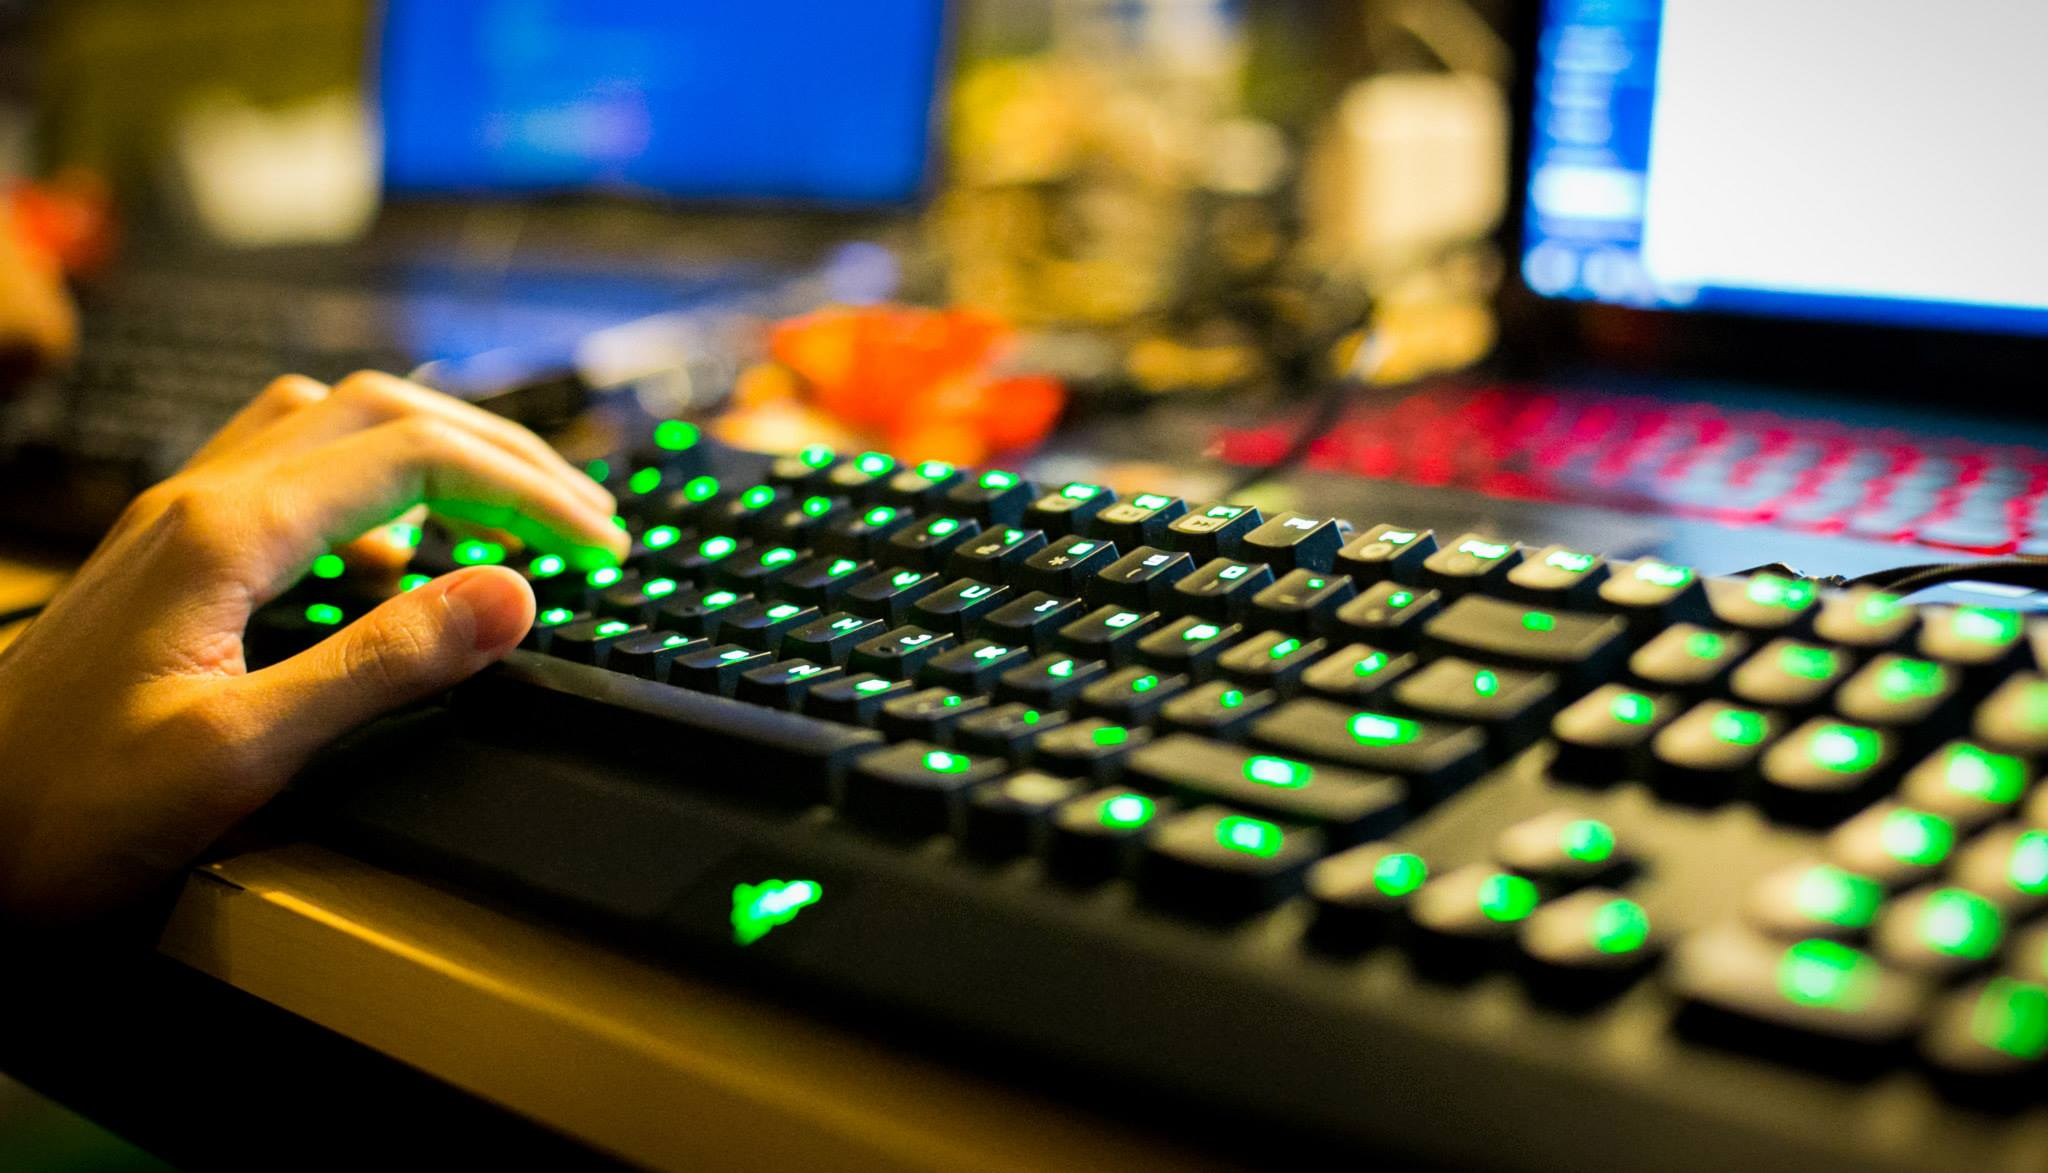 The technology fashioned revolution in online gaming